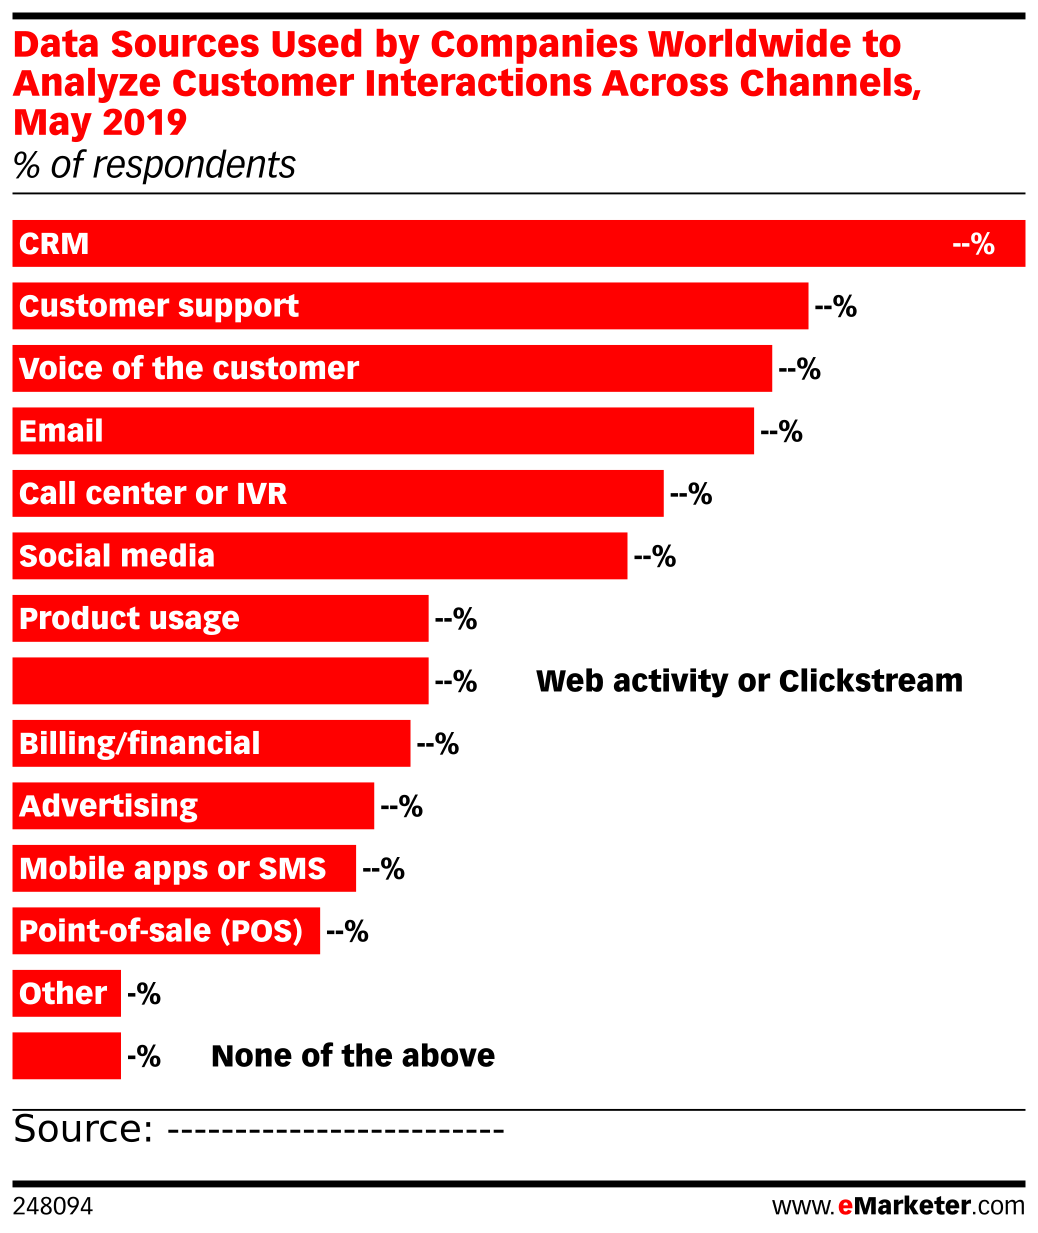 Data Sources Used by Companies Worldwide to Analyze Customer Interactions Across Channels, May 2019 (% of respondents)